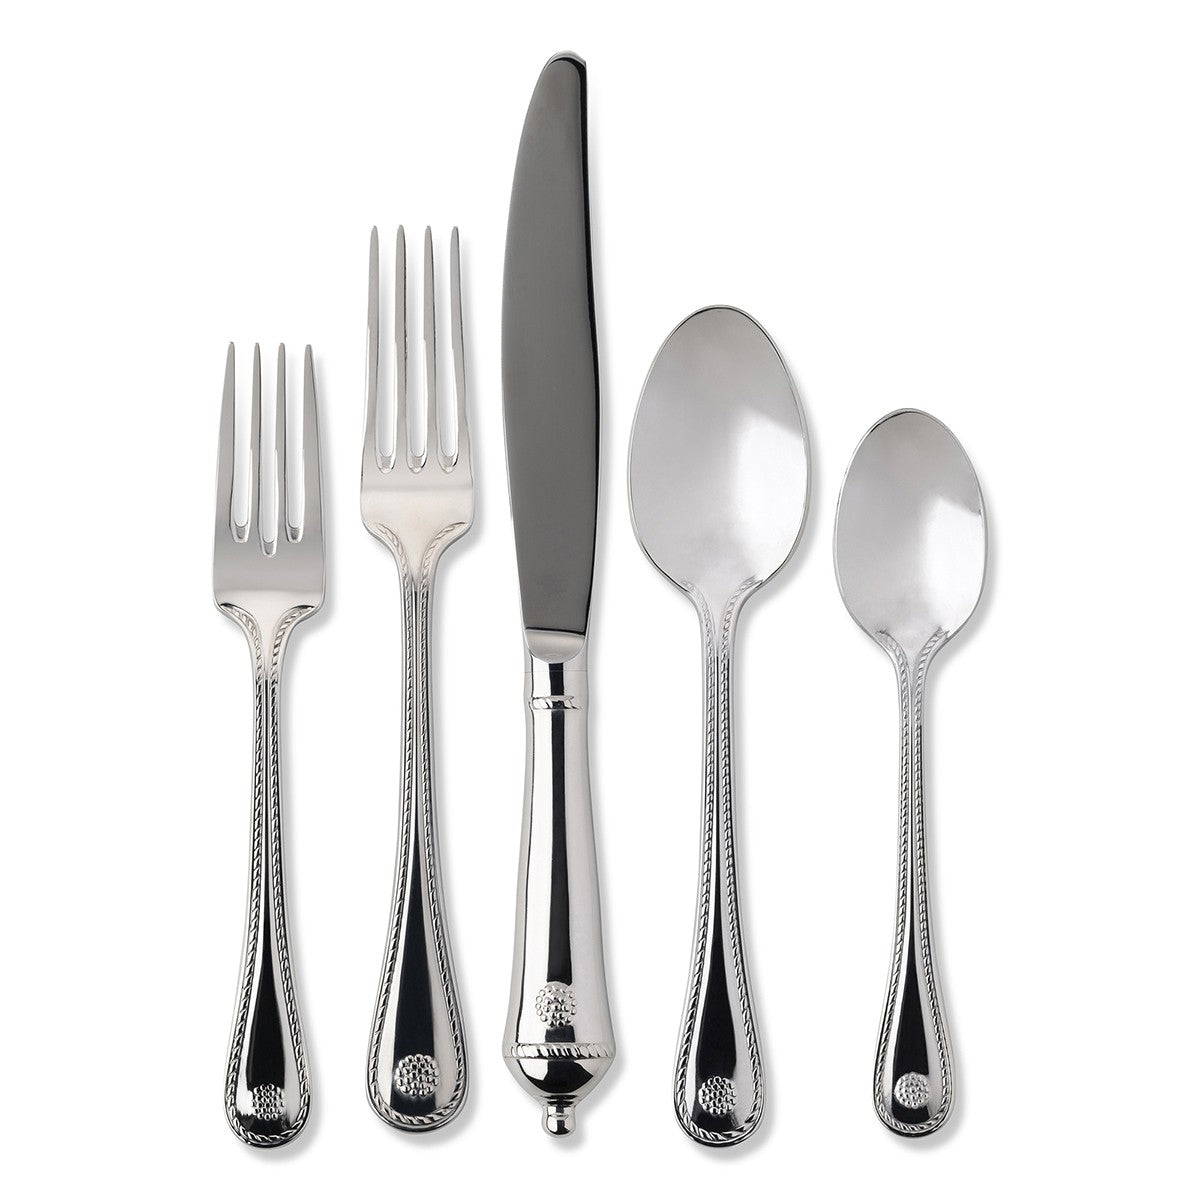 B & T Polished 5 Piece Place Setting